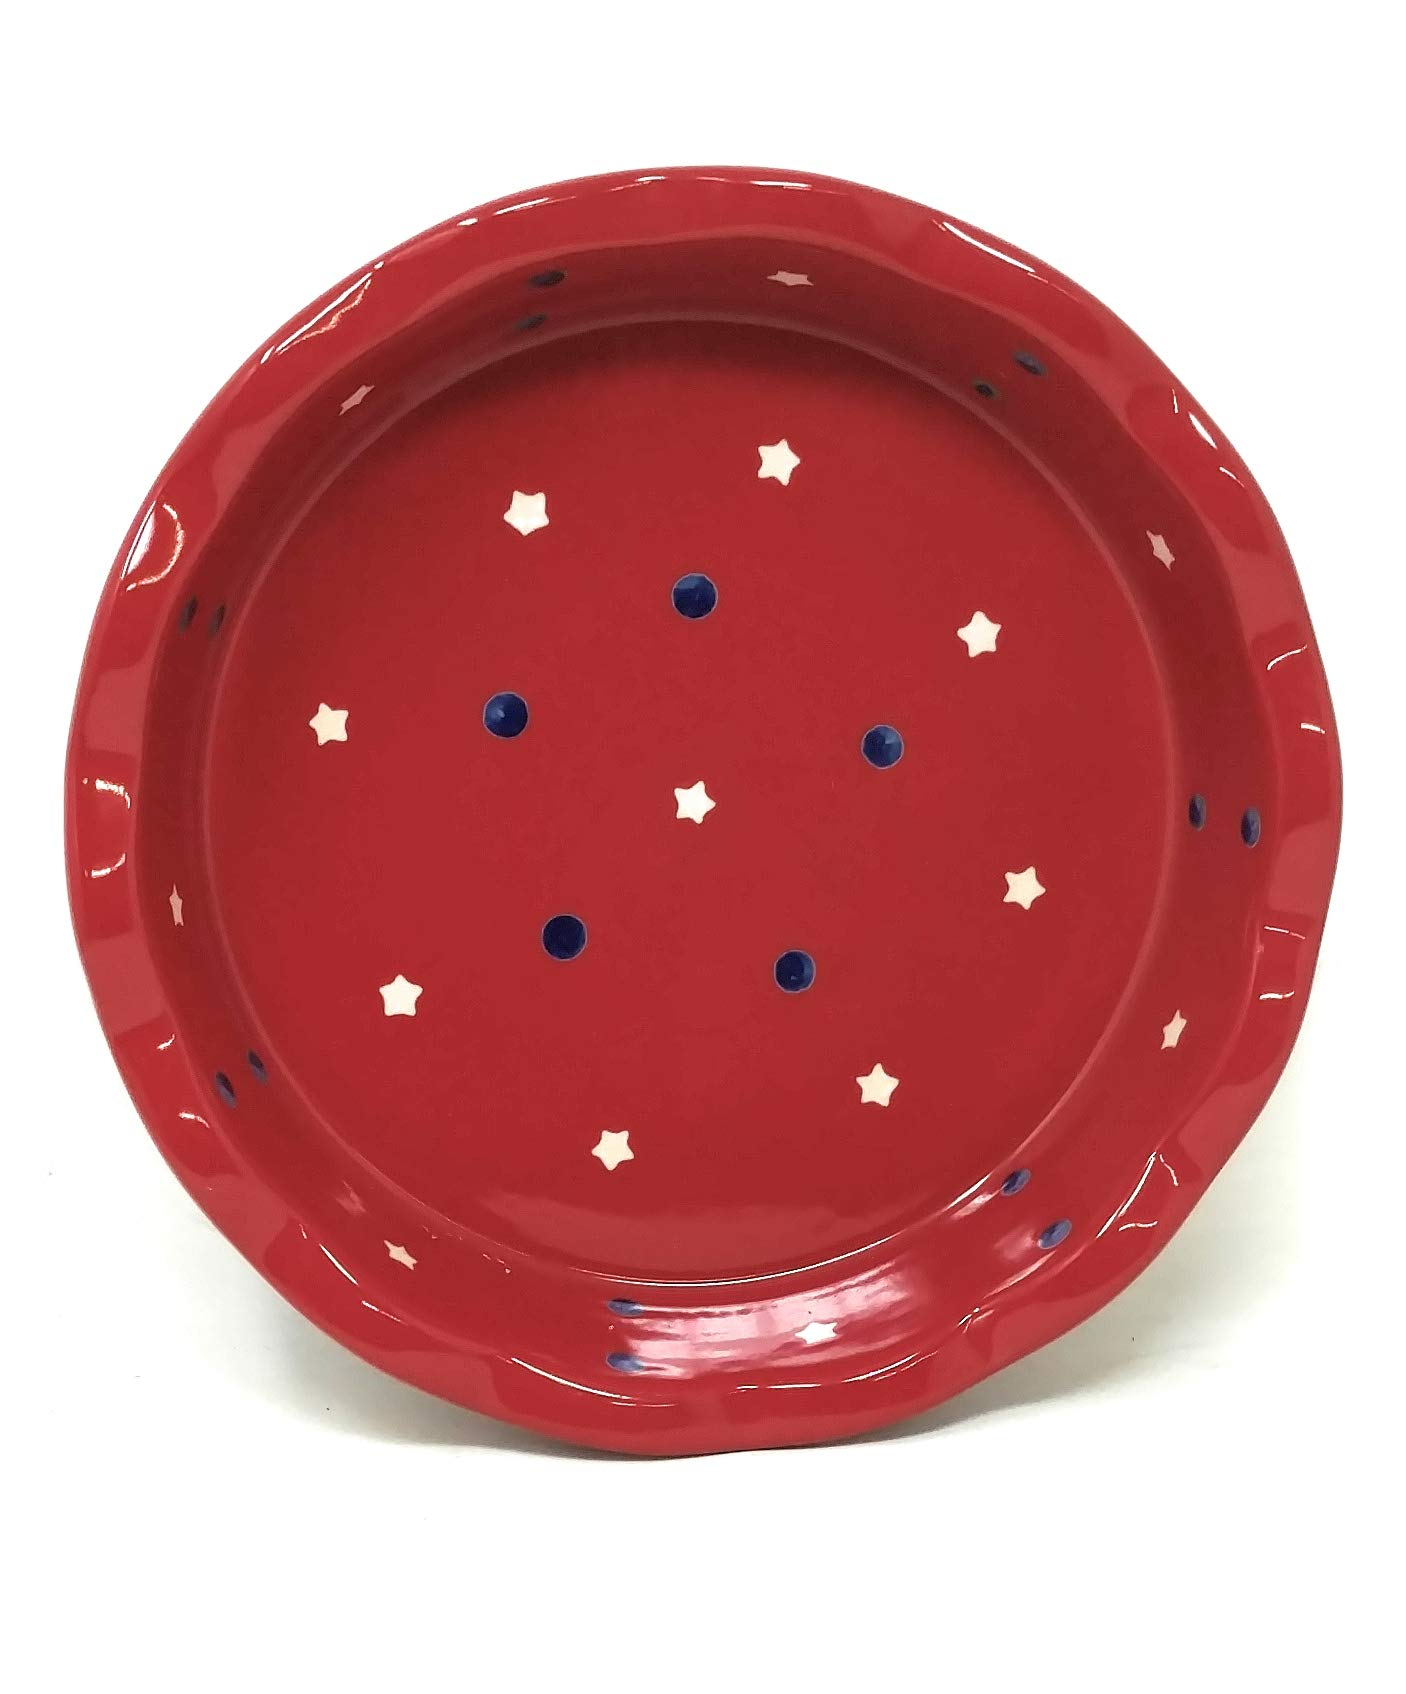 Temp-tations Red, White & Blue 10'' x 2.25'' Pie Pan, Scalloped, Deep Dish Pizza or Quiche (Red) by Stoneware (Image #2)